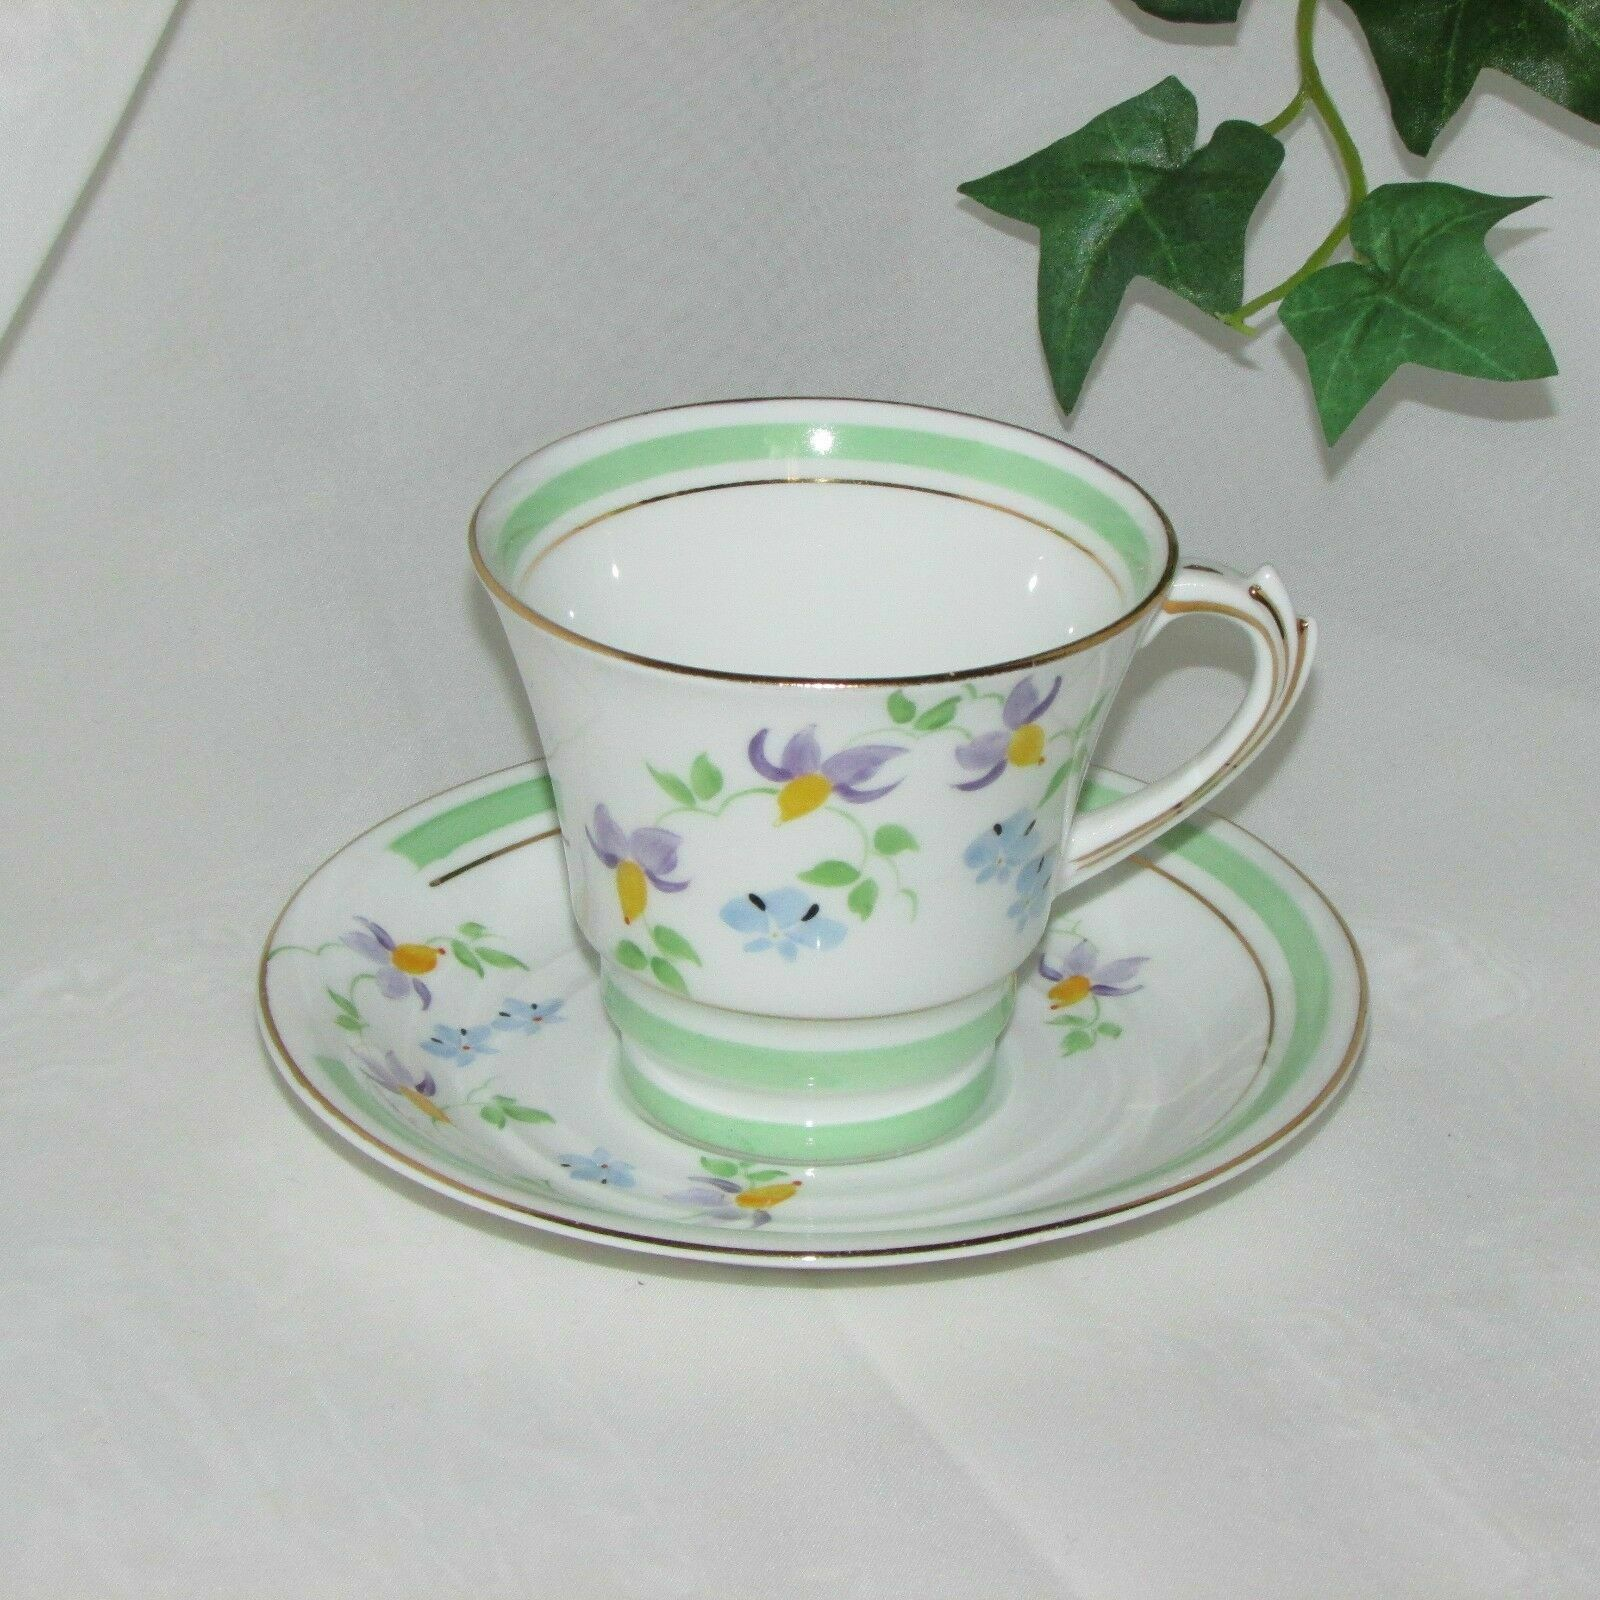 Primary image for ROSINA HAND PAINTED BONE CHINA TEACUP FLORAL CUP & SAUCER MINT GREEN BAND ENGLAN